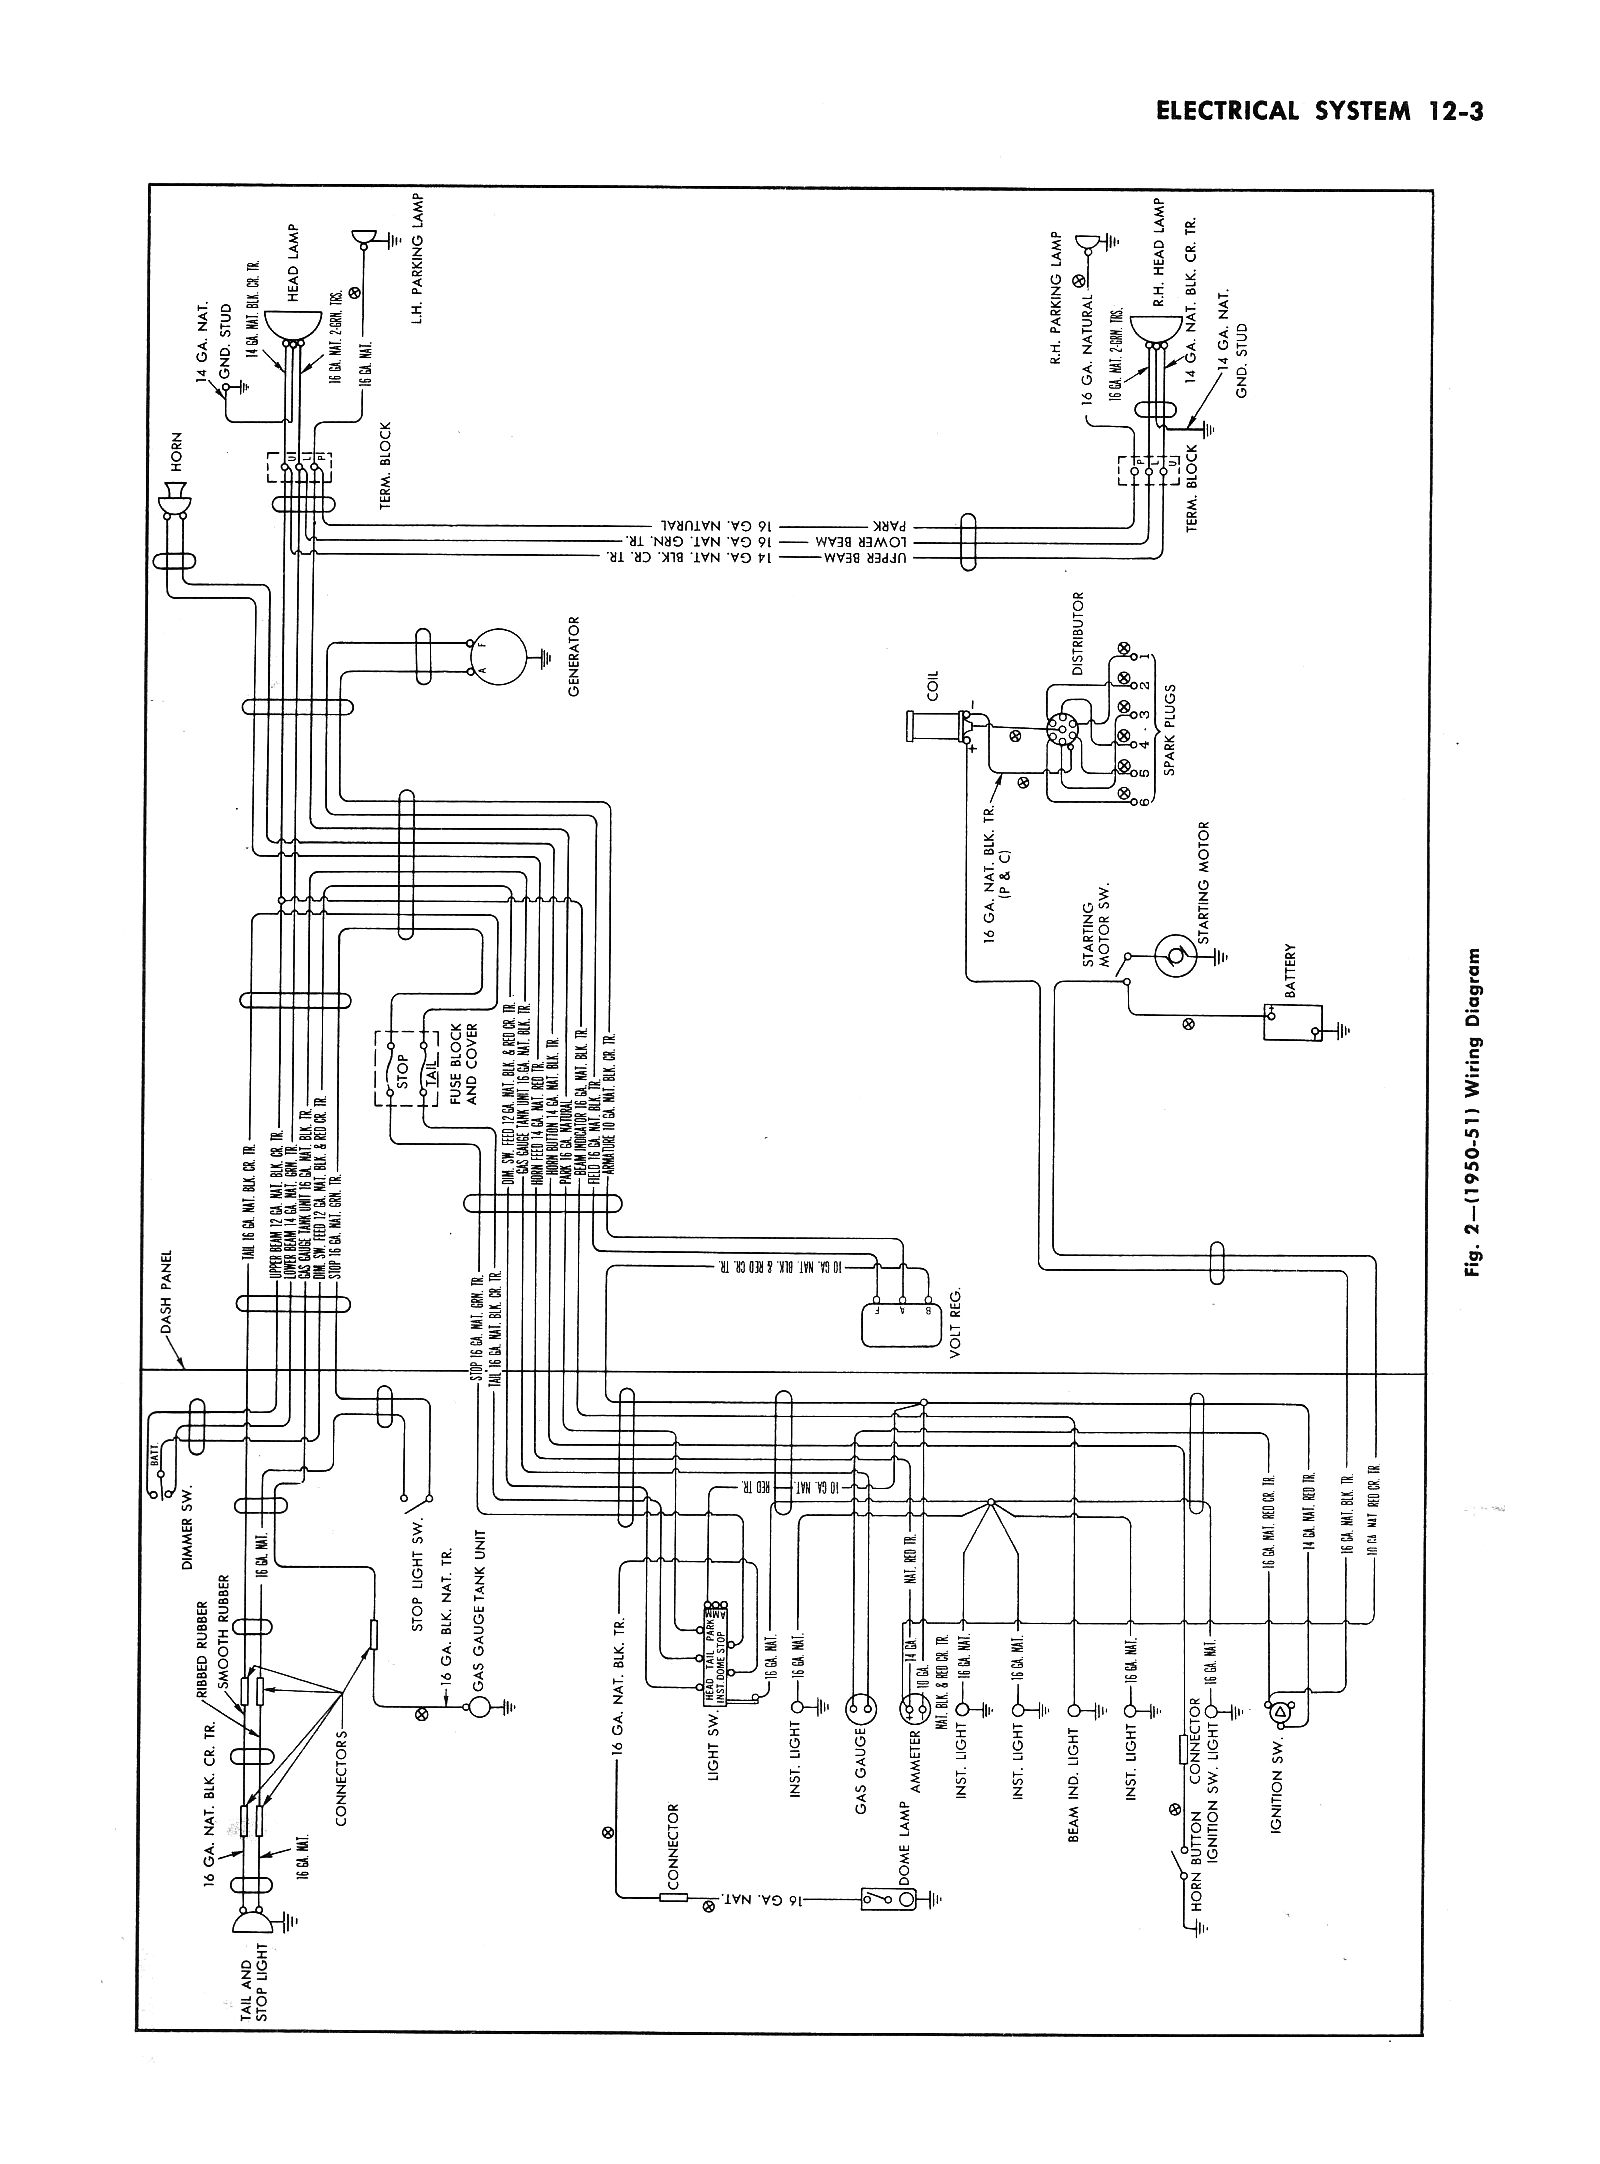 51ctsm1203 chevy wiring diagrams CJ2A Help at mifinder.co